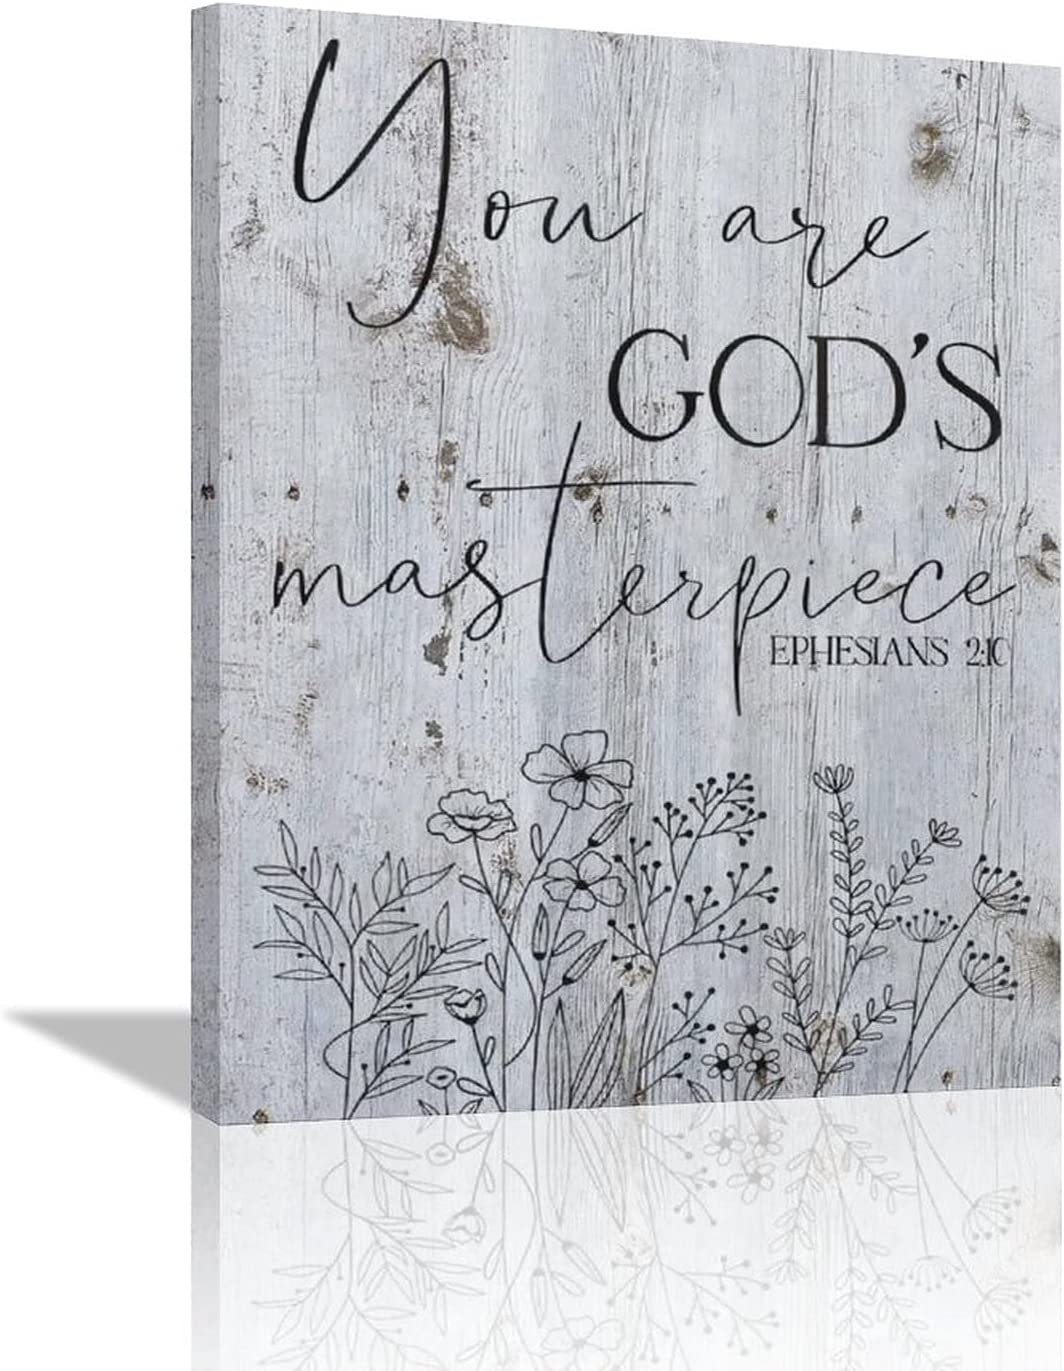 citari Christian Wall Art Scripture Bible Verse Canvas Print Inspirational Poster Black and White Painting Rustic Farmhouse Wall Décor Religious Picture Motivational Quotes Framed Artwork 12